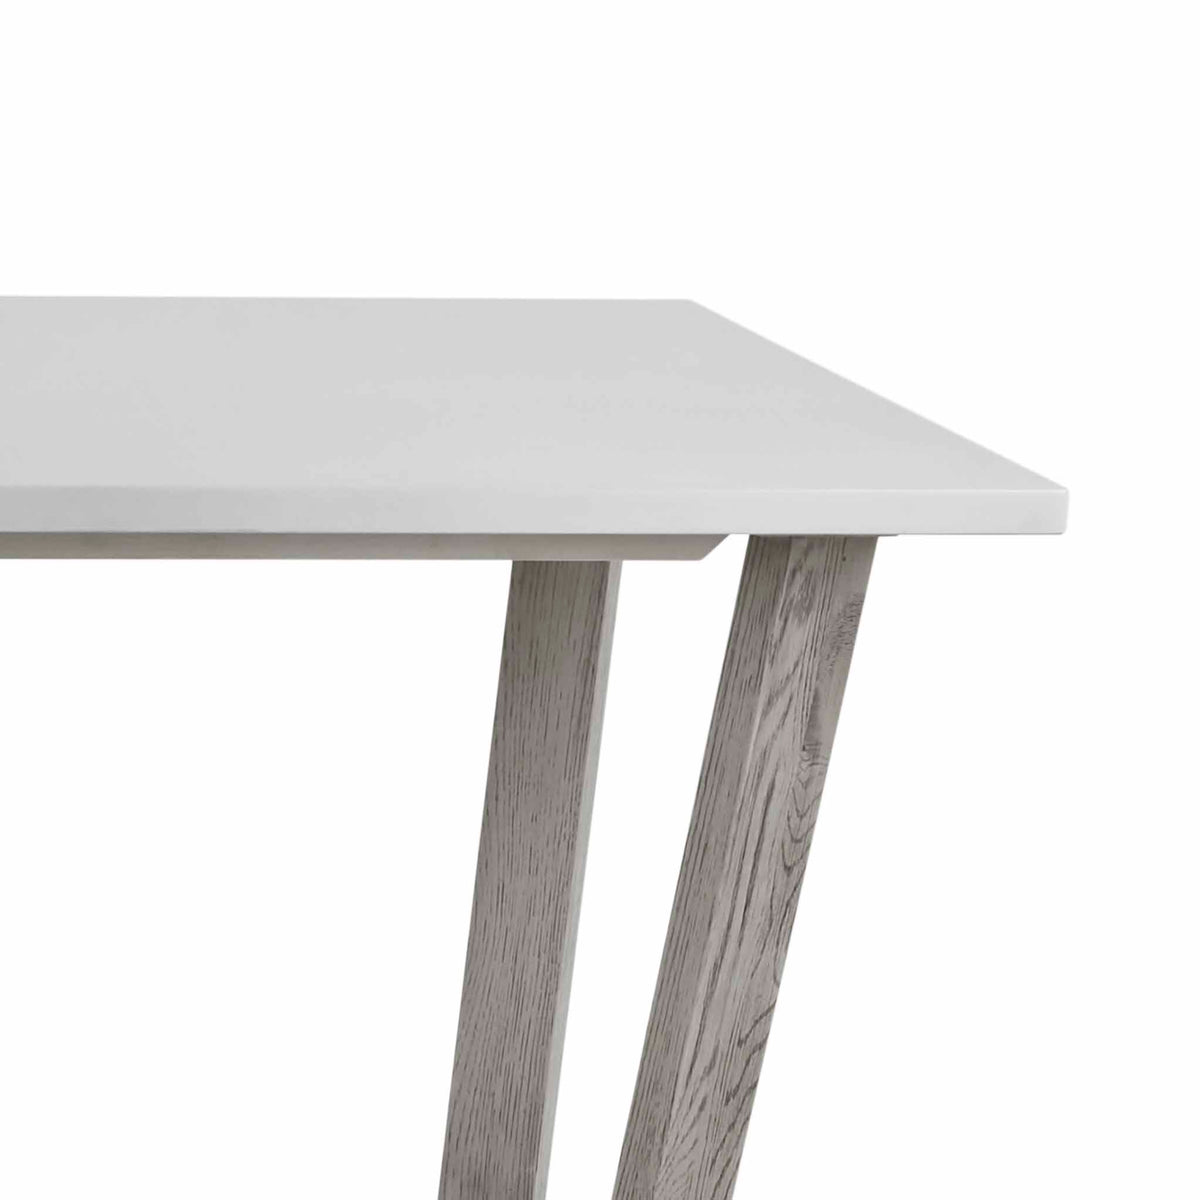 Epsom 150cm Rectangular Dining Table with concrete effect top